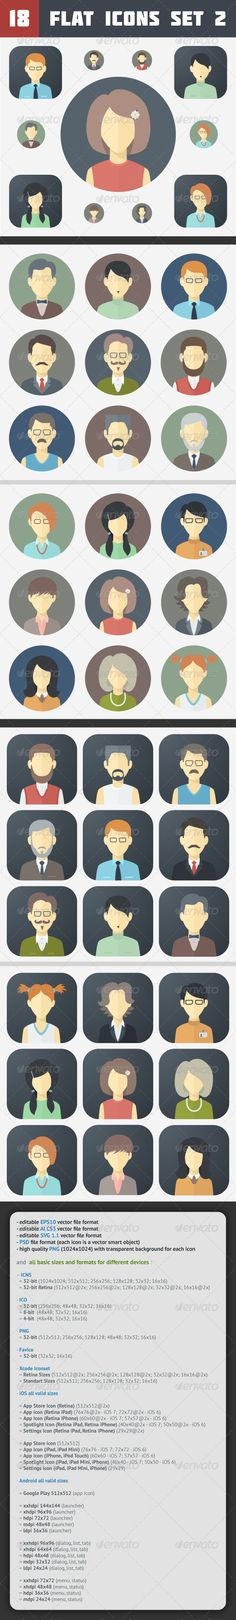 Minimalistic Flat Faces Icons | Buy and Download: http://graphicriver.net/item/minimalistic-flat-faces-icons-set-2/7093110?WT.ac=category_thumb&WT.z_author=MastakA&ref=ksioks